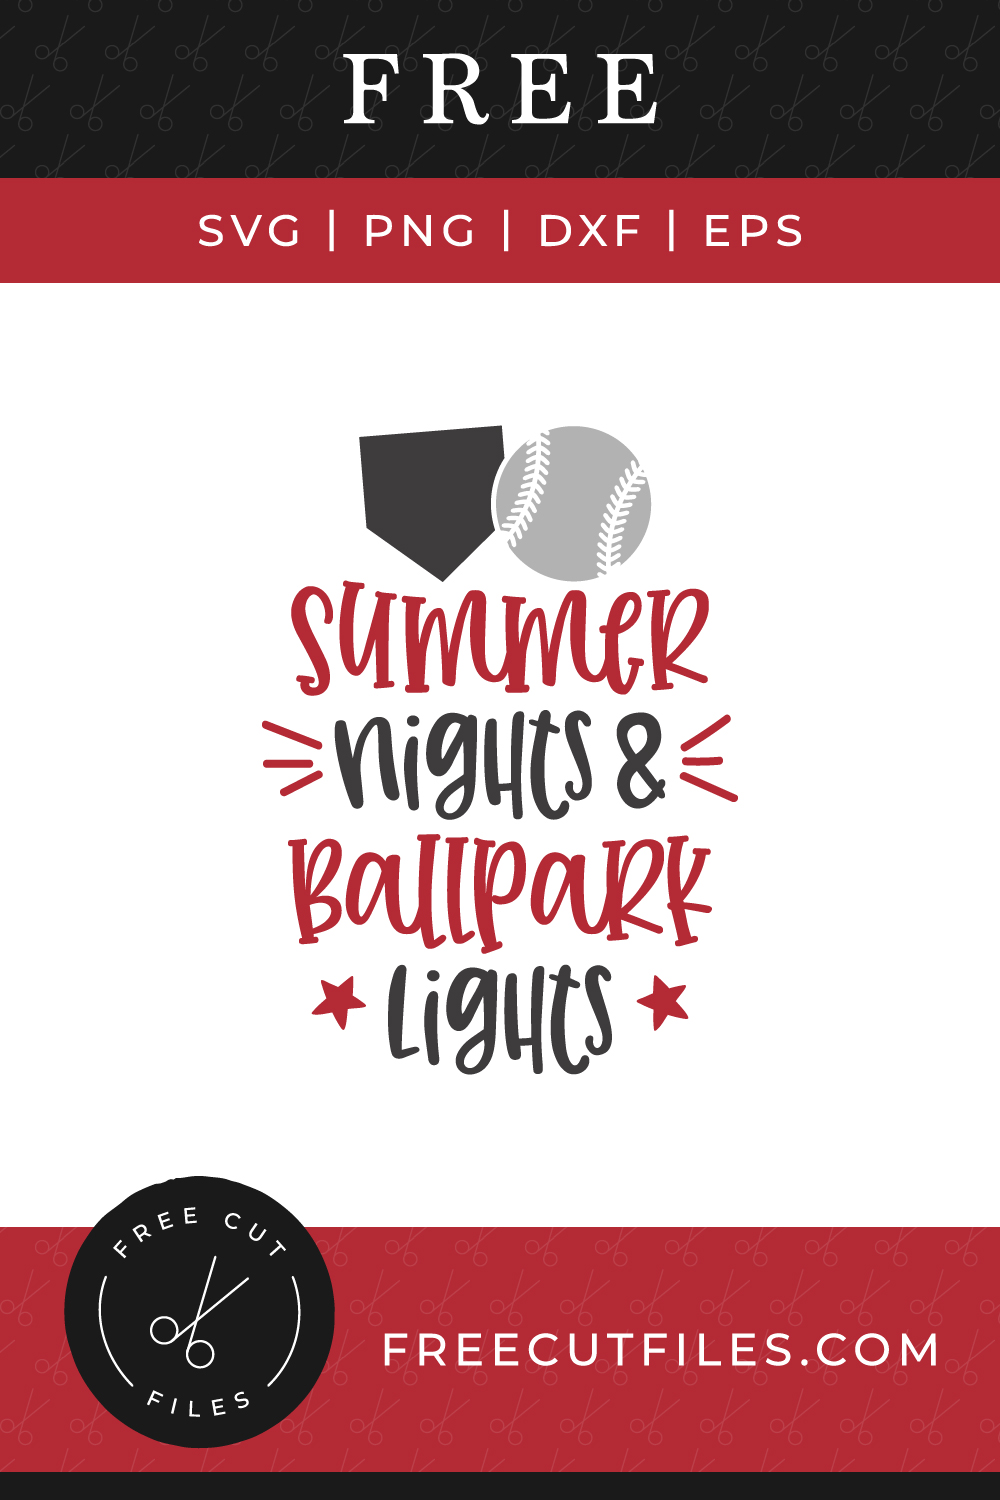 Free Baseball quote SVG - Summer nights and Ballpark lights